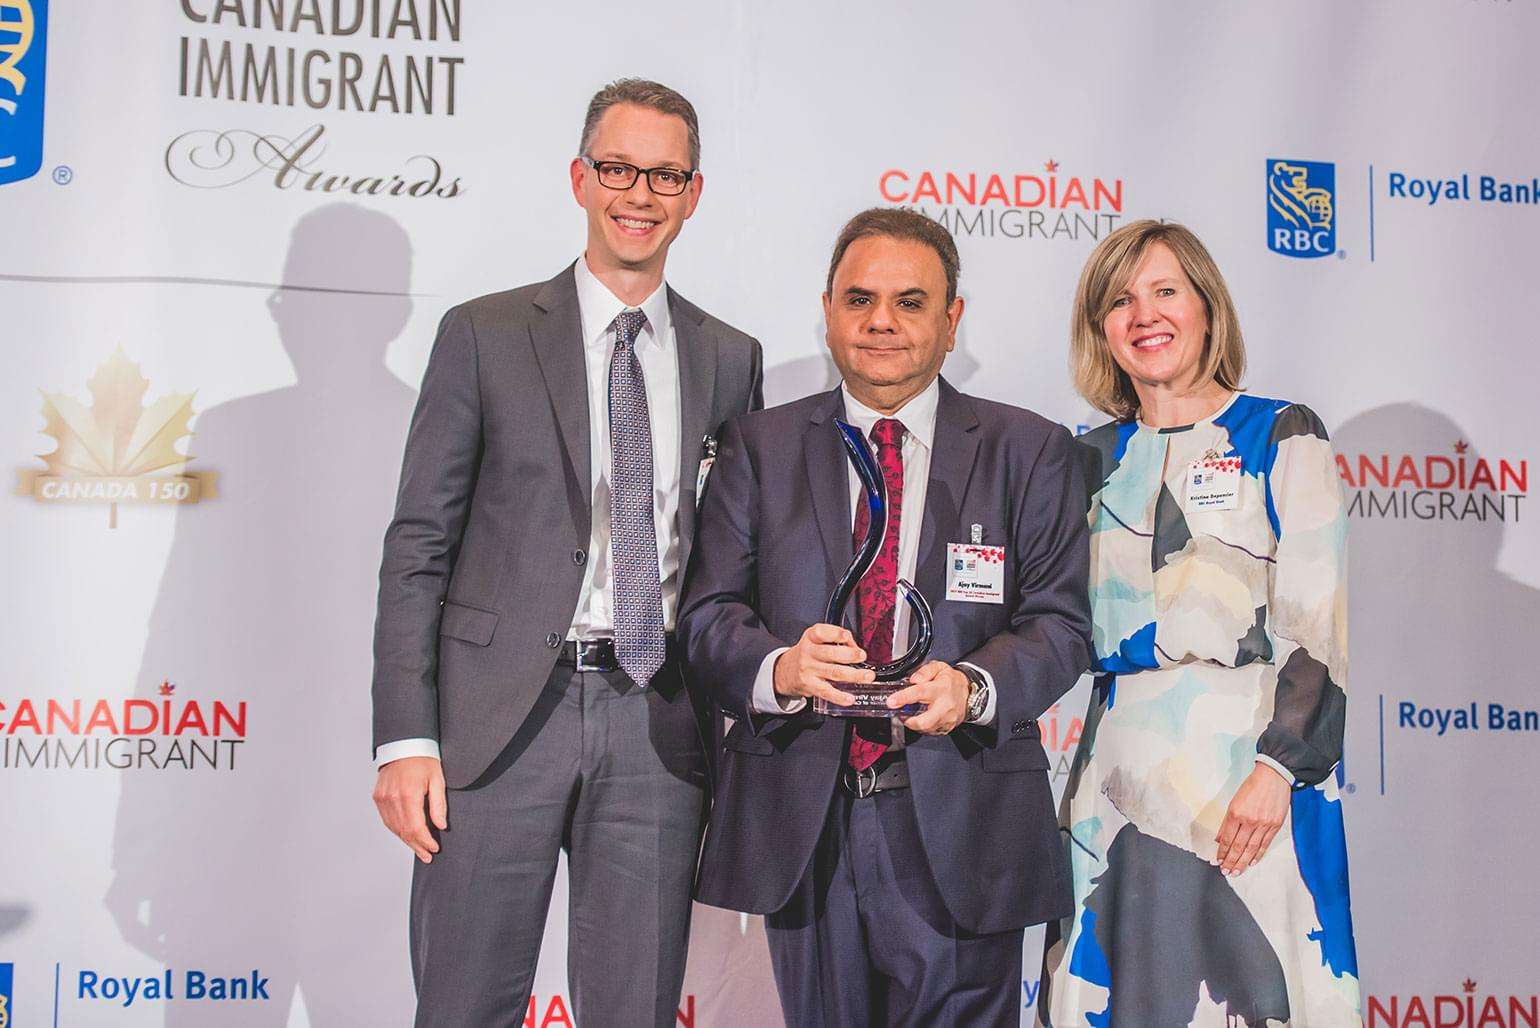 Ajay was recently recognized as a winner in the annual RBC Top 25 Canadian Immigrant Awards – an award that celebrates the outstanding accomplishments made by Canadian newcomers.